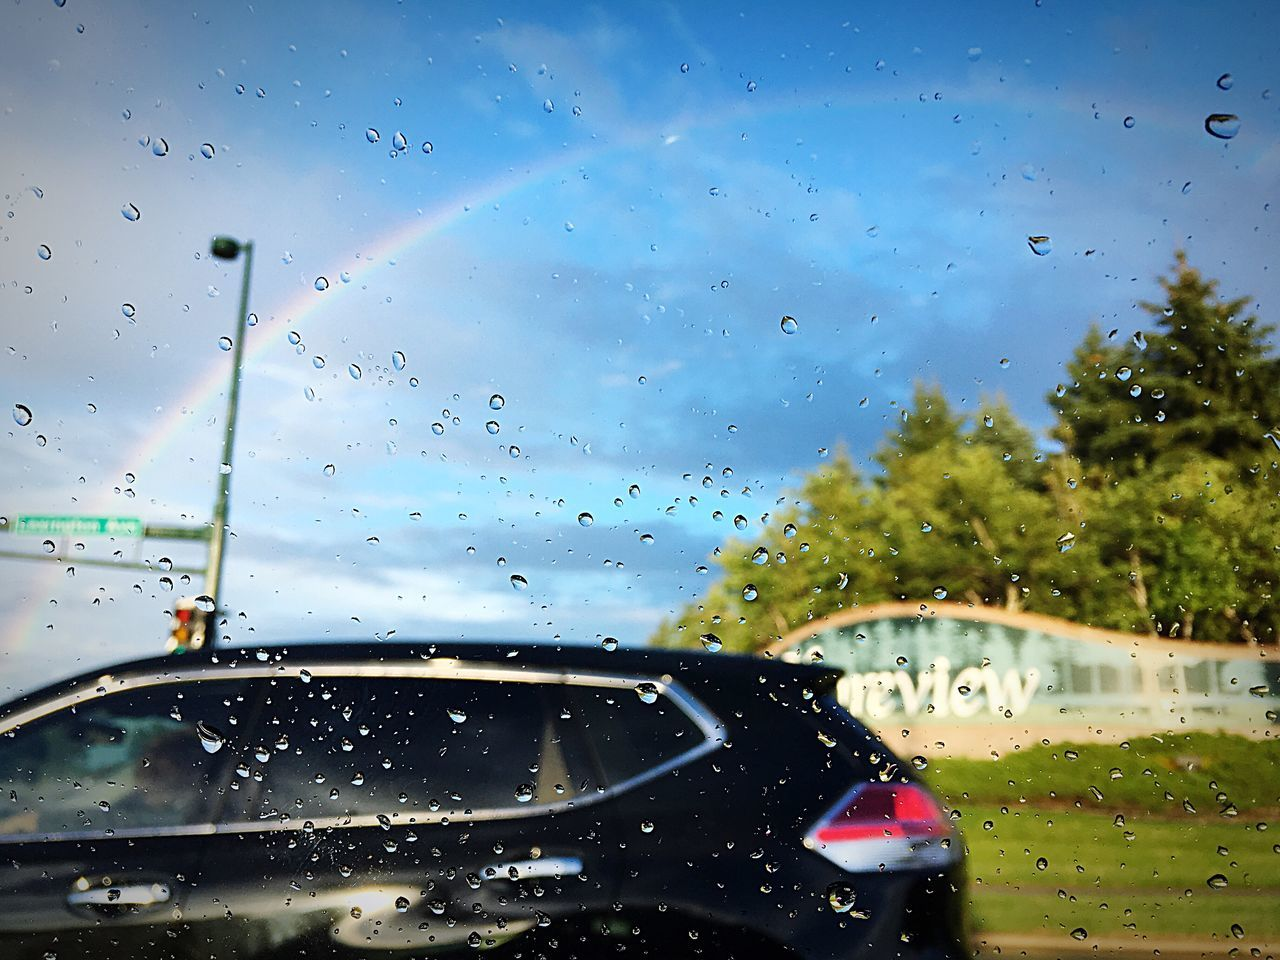 transparent, drop, rain, glass - material, water, wet, vehicle interior, raindrop, mode of transport, transportation, land vehicle, rainy season, droplet, car interior, windshield, no people, water drop, car, sky, window, focus on foreground, close-up, nature, day, outdoors